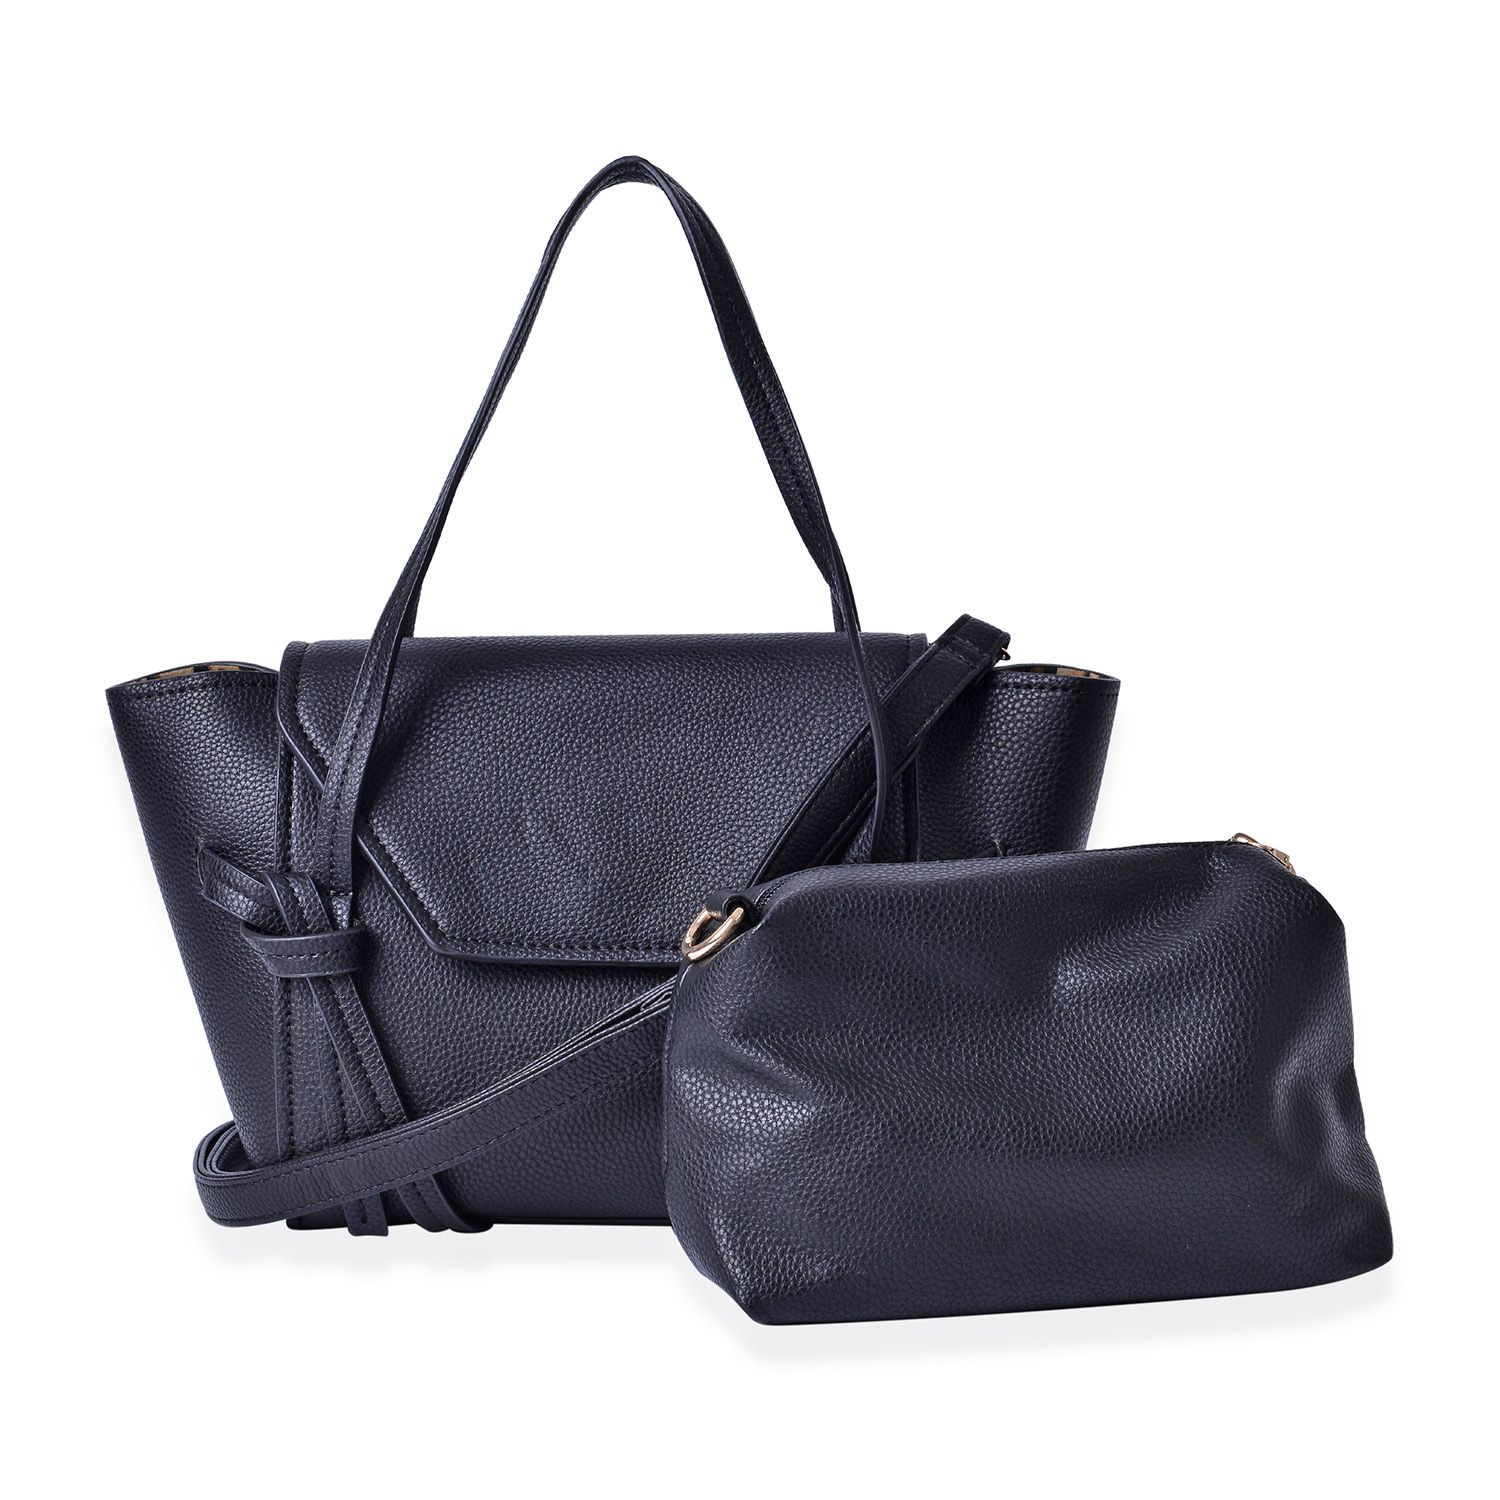 cf580520c281 Black Faux Leather Tote Bag (14.5x5x8.5 in) and Crossbody Clutch Bag  (8x3x5.5 in)